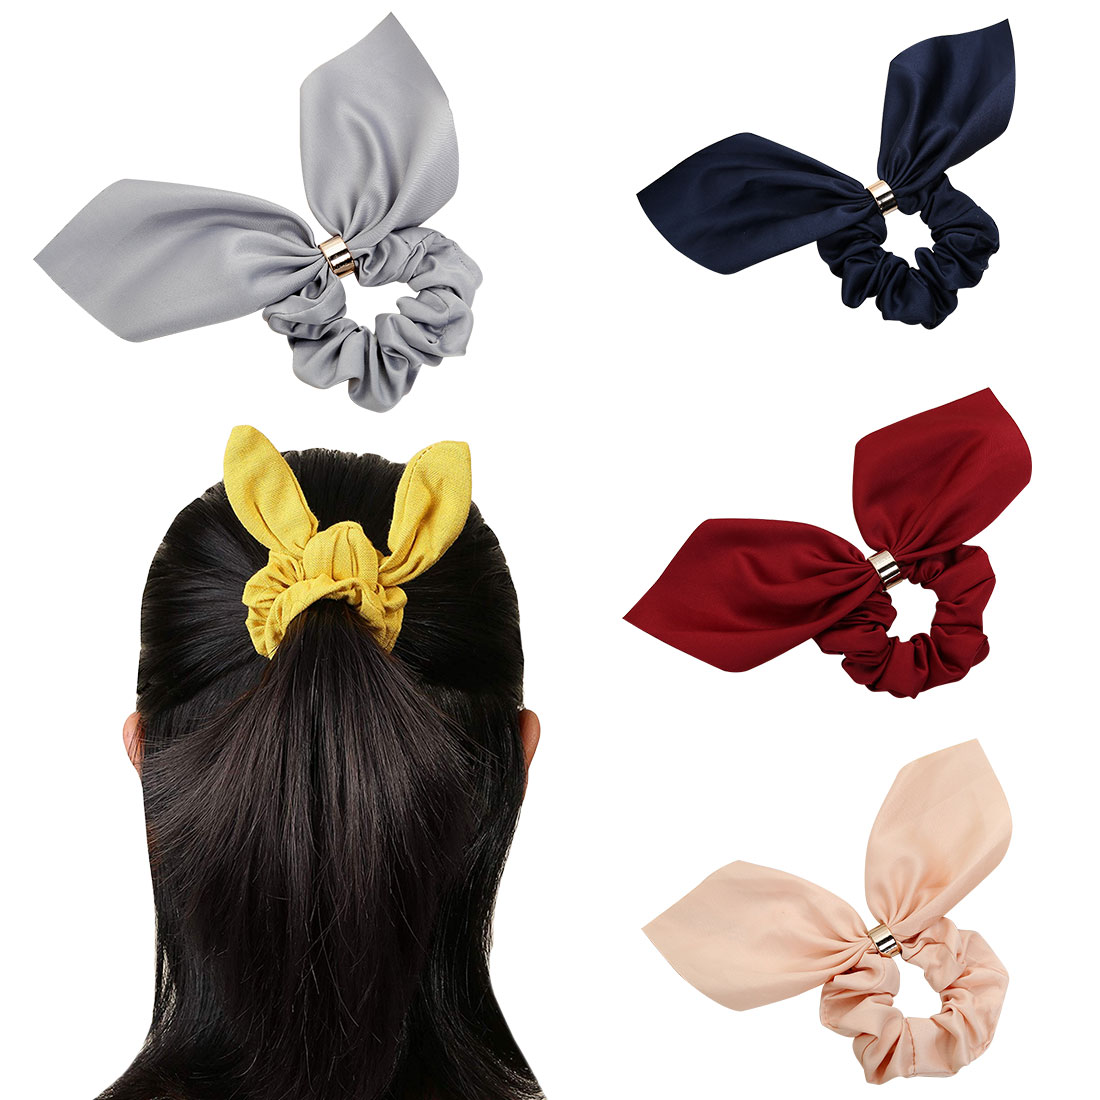 Women Rubber Bands Tiara Satin Ribbon Bow Hair Band Rope Scrunchie Ponytail Holder Elastic Gum for Accessories